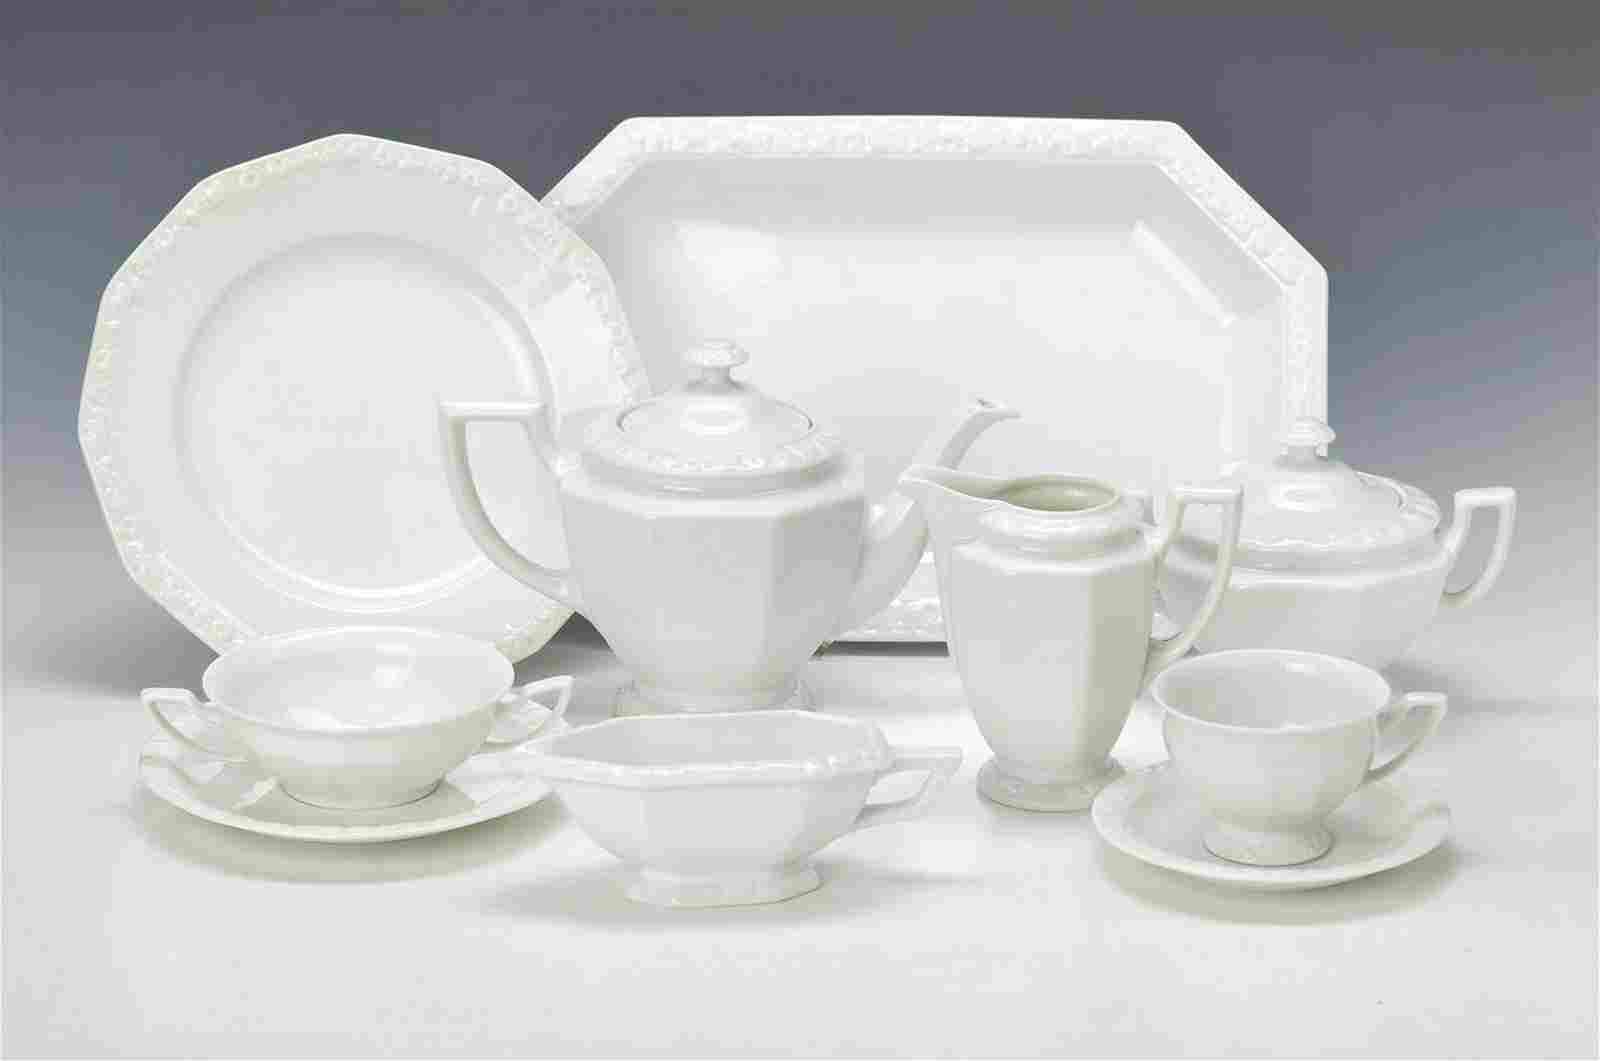 extensive Set, Model Mary in white, Rosenthal,Middle of